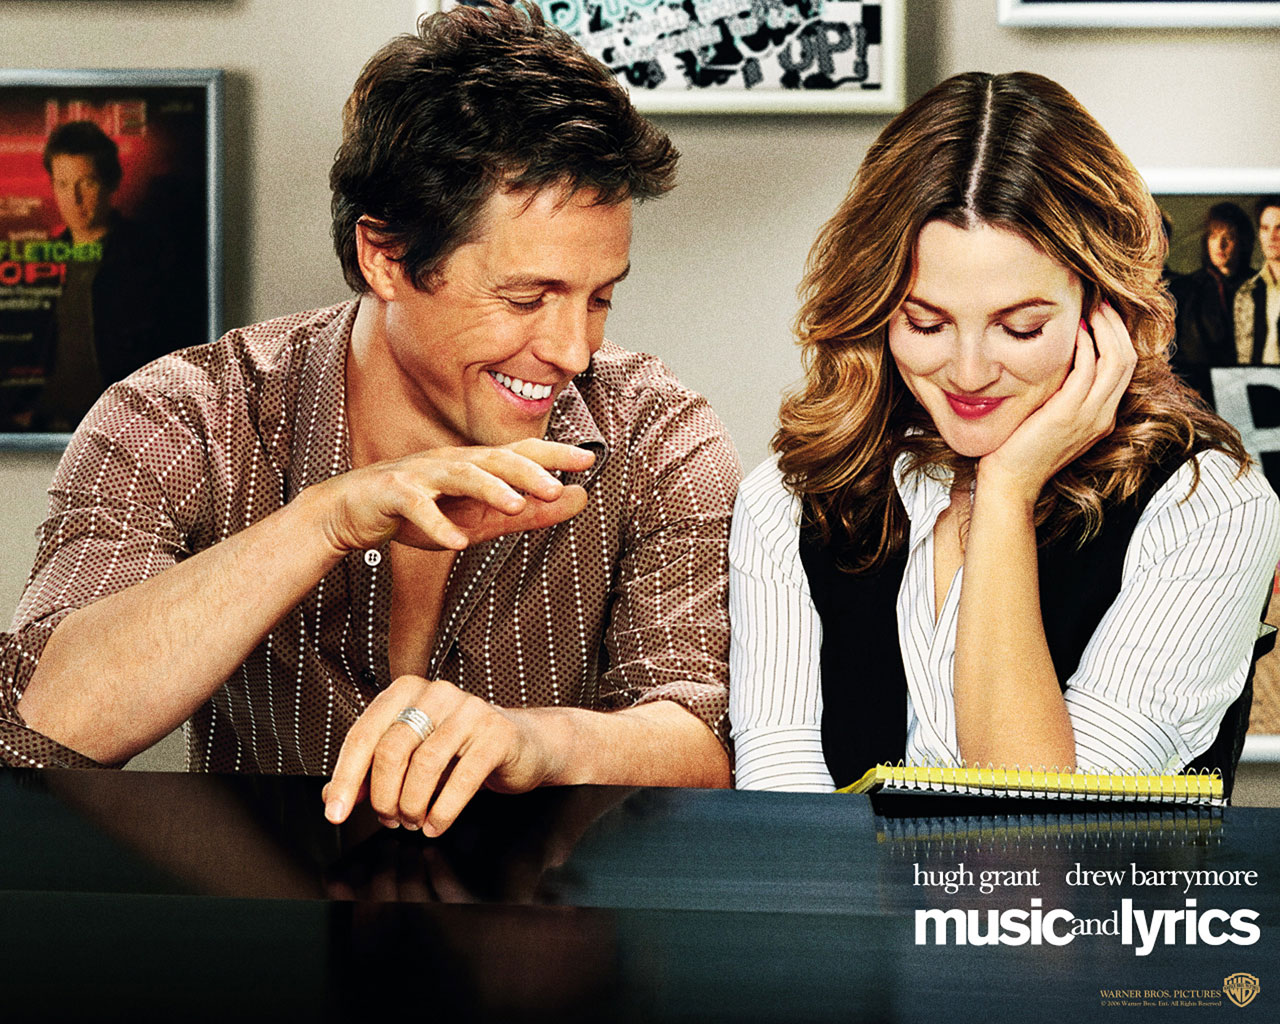 http://4.bp.blogspot.com/-oF20DmNMXRA/TyIbMpClQjI/AAAAAAAAARk/uBcp2fJggVU/s1600/Music_and_Lyrics,_2007,_Hugh_Grant,_Drew_Barrymore.jpg